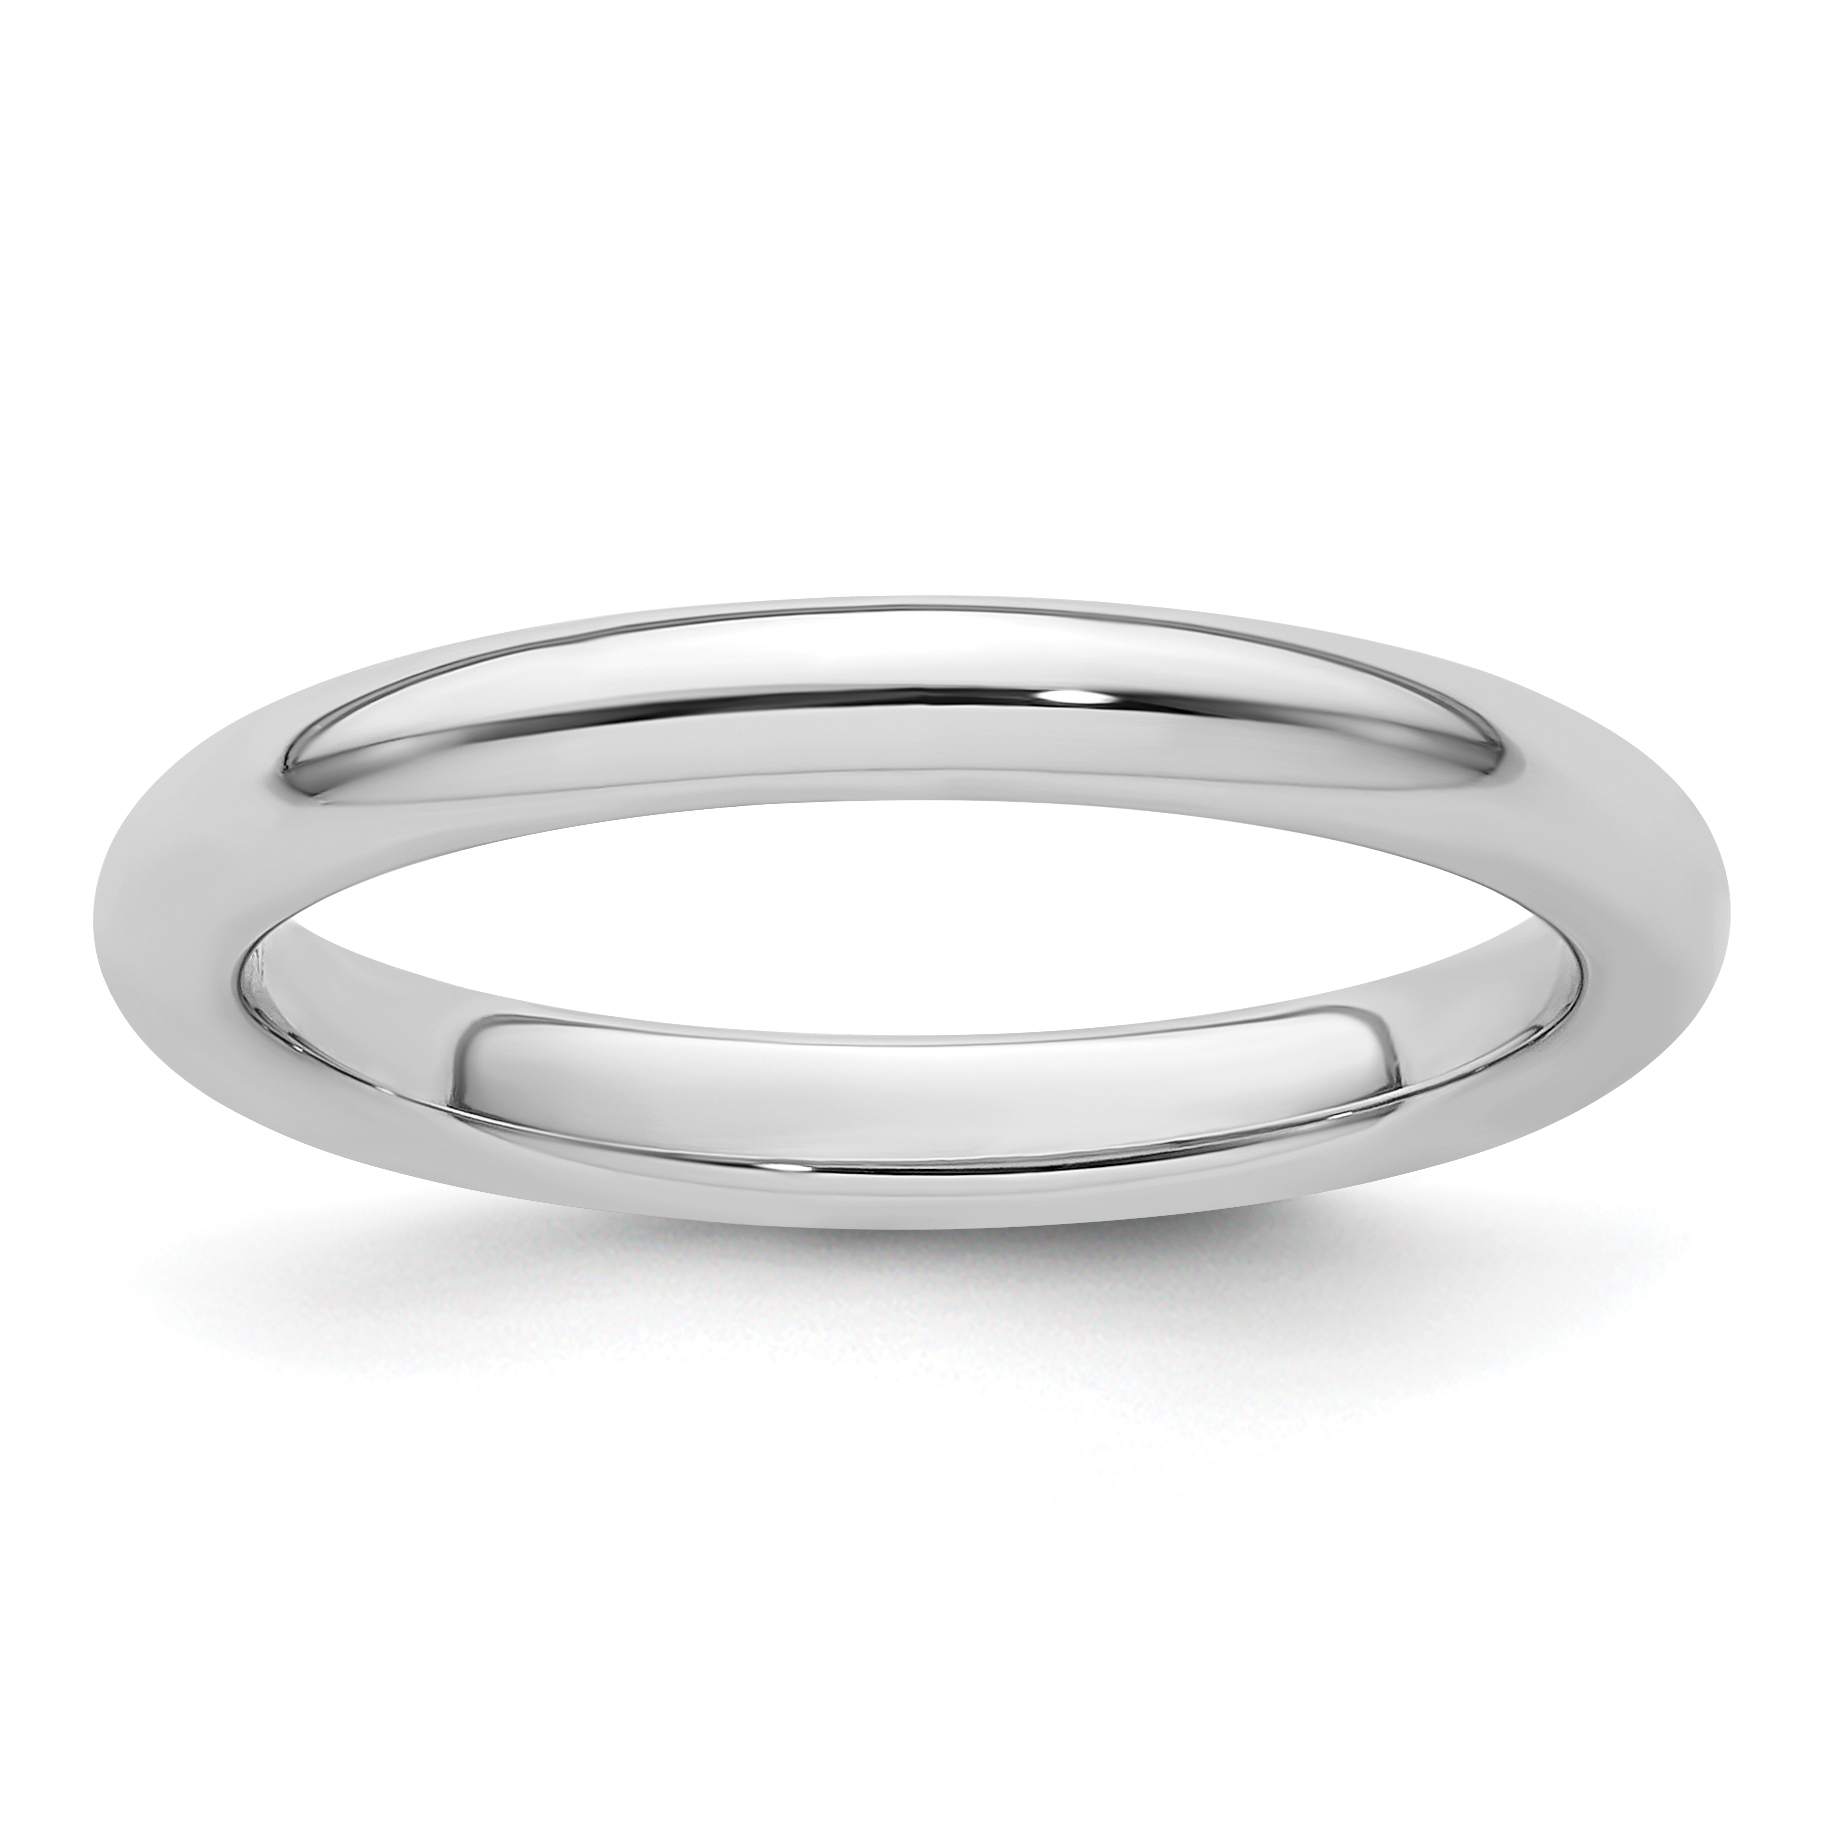 Platinum 2 5mm Comfort Fit Wedding Ring Band Size 6 00 Classic Domed